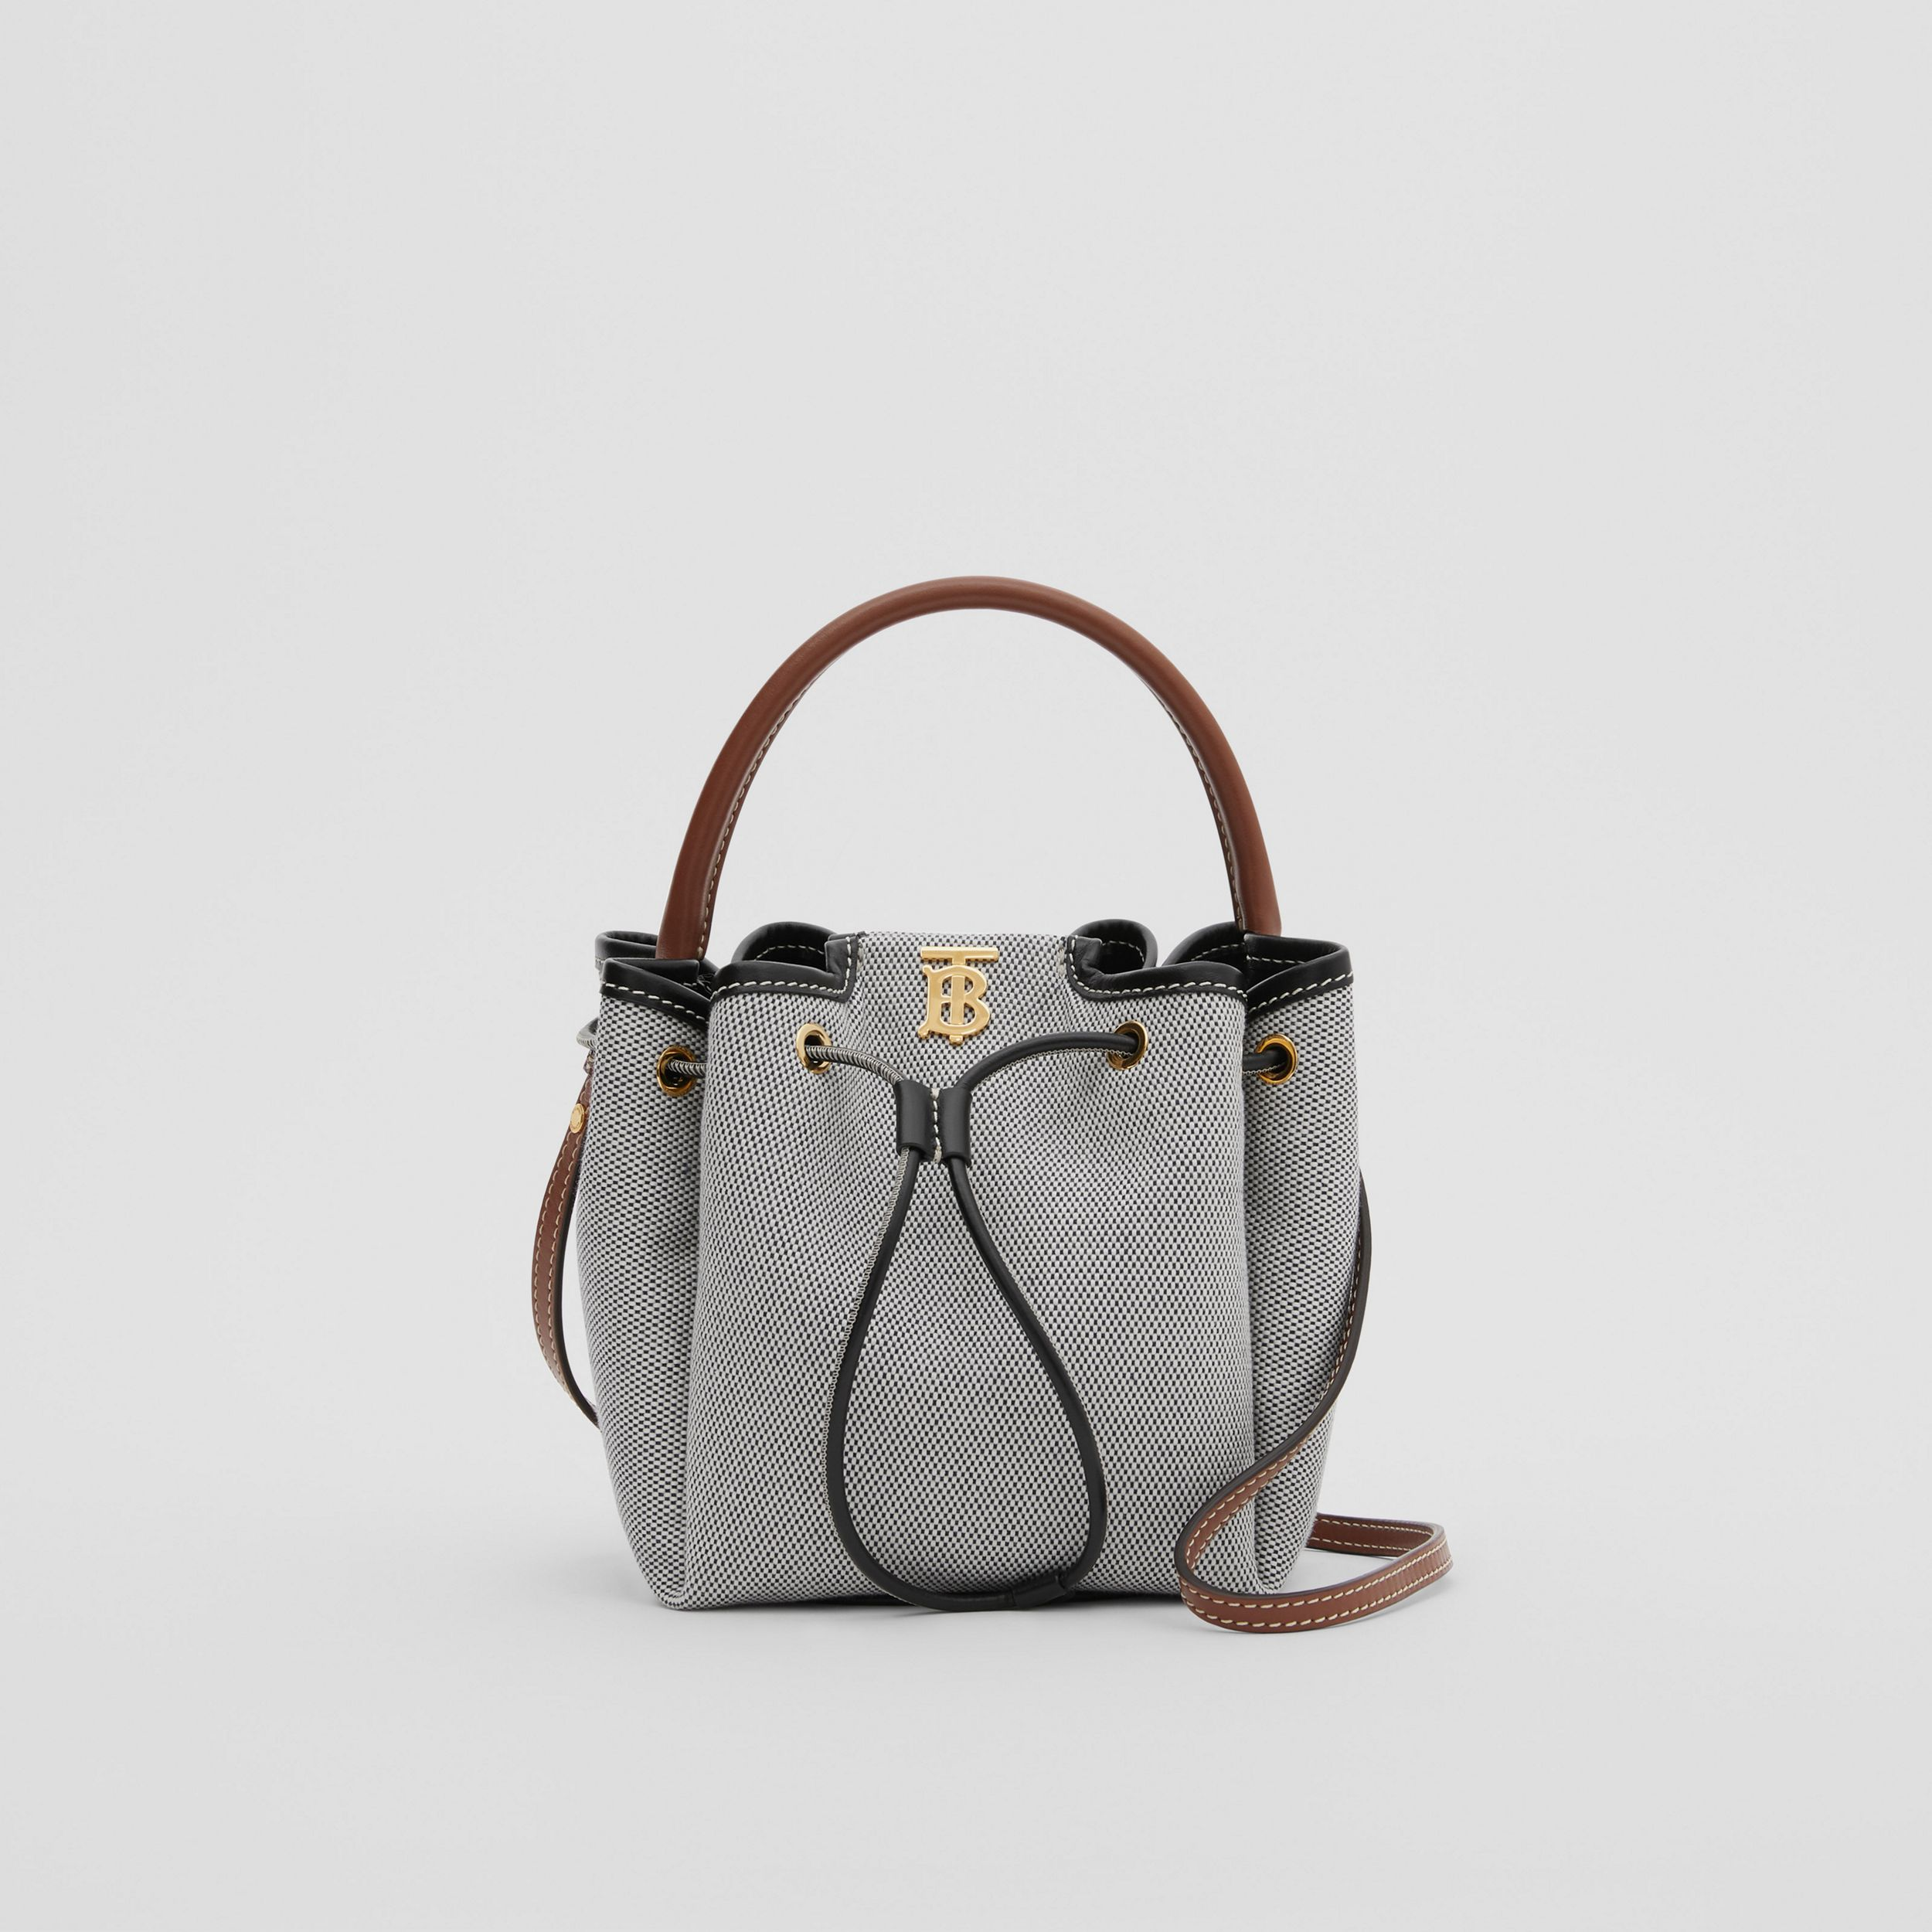 Monogram Motif Canvas and Leather Bucket Bag in Black - Women | Burberry - 1